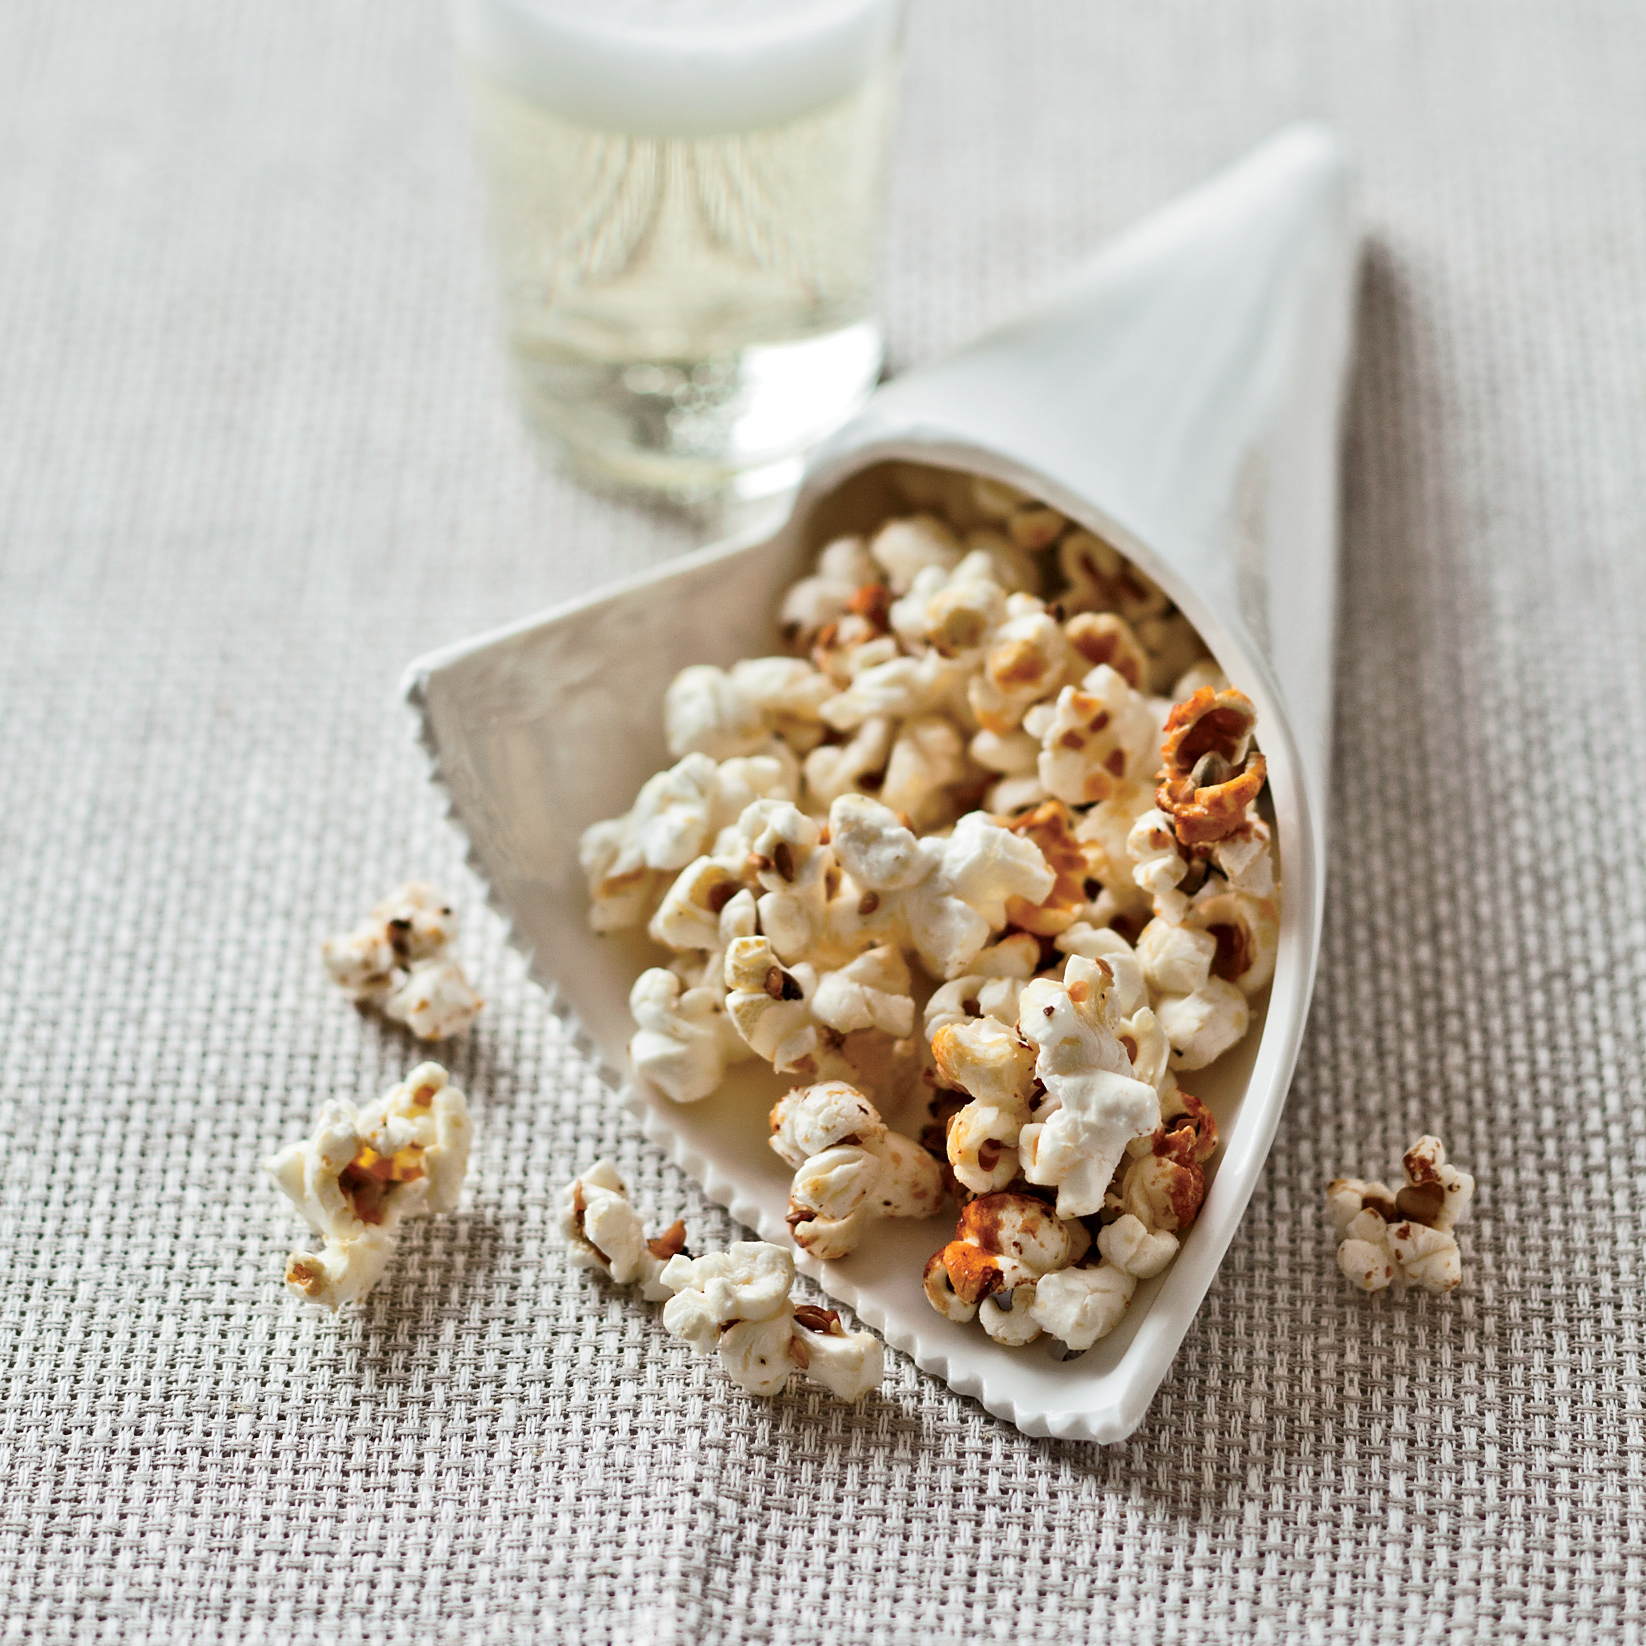 images-sys-201203-r-black-pepper-kettle-corn.jpg